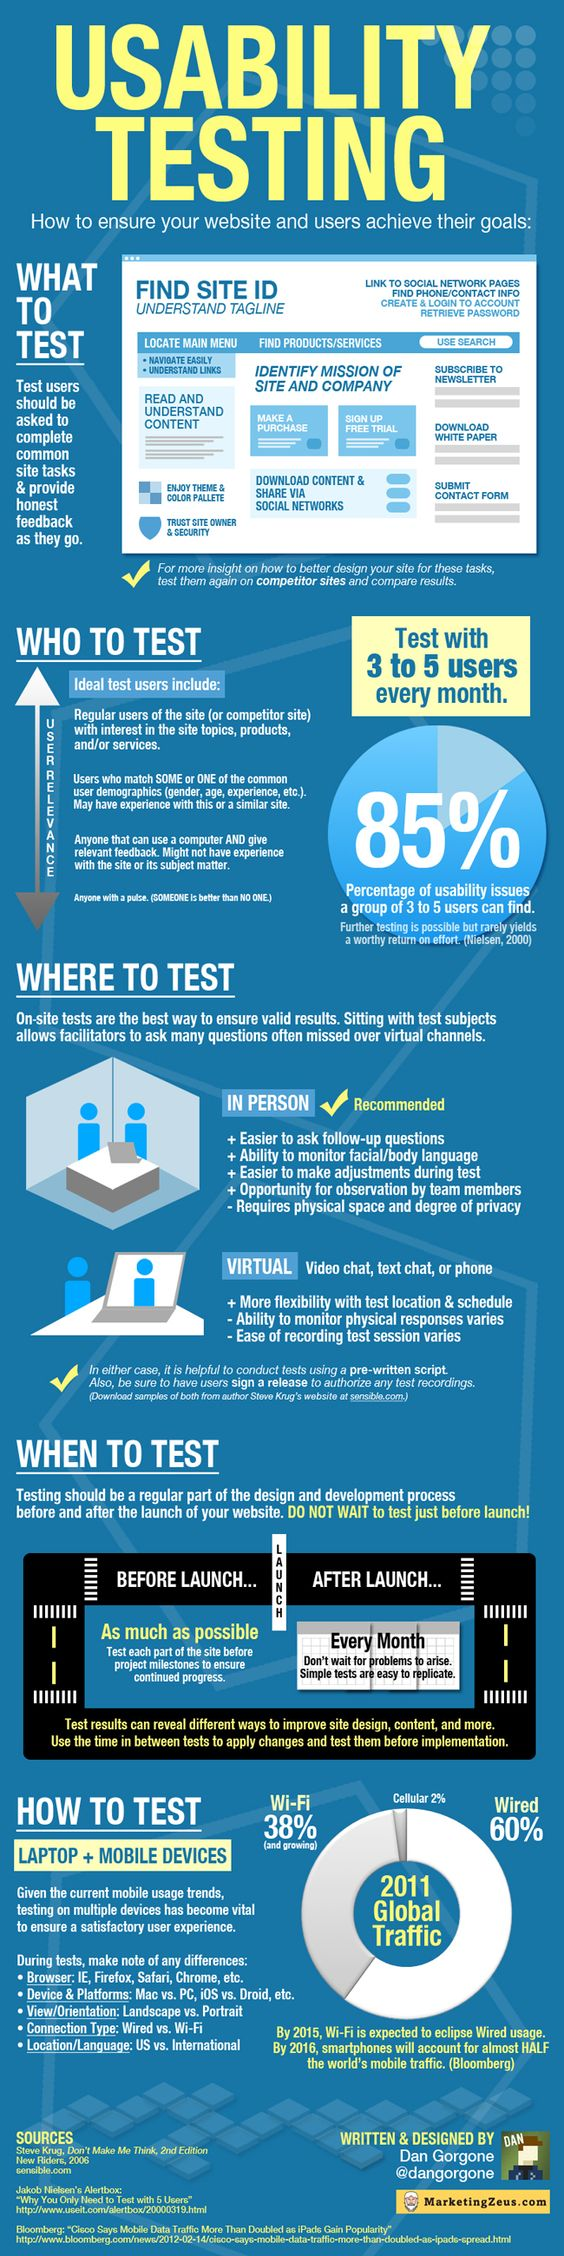 Importance of Usability Testing in Website Designing- Infographic